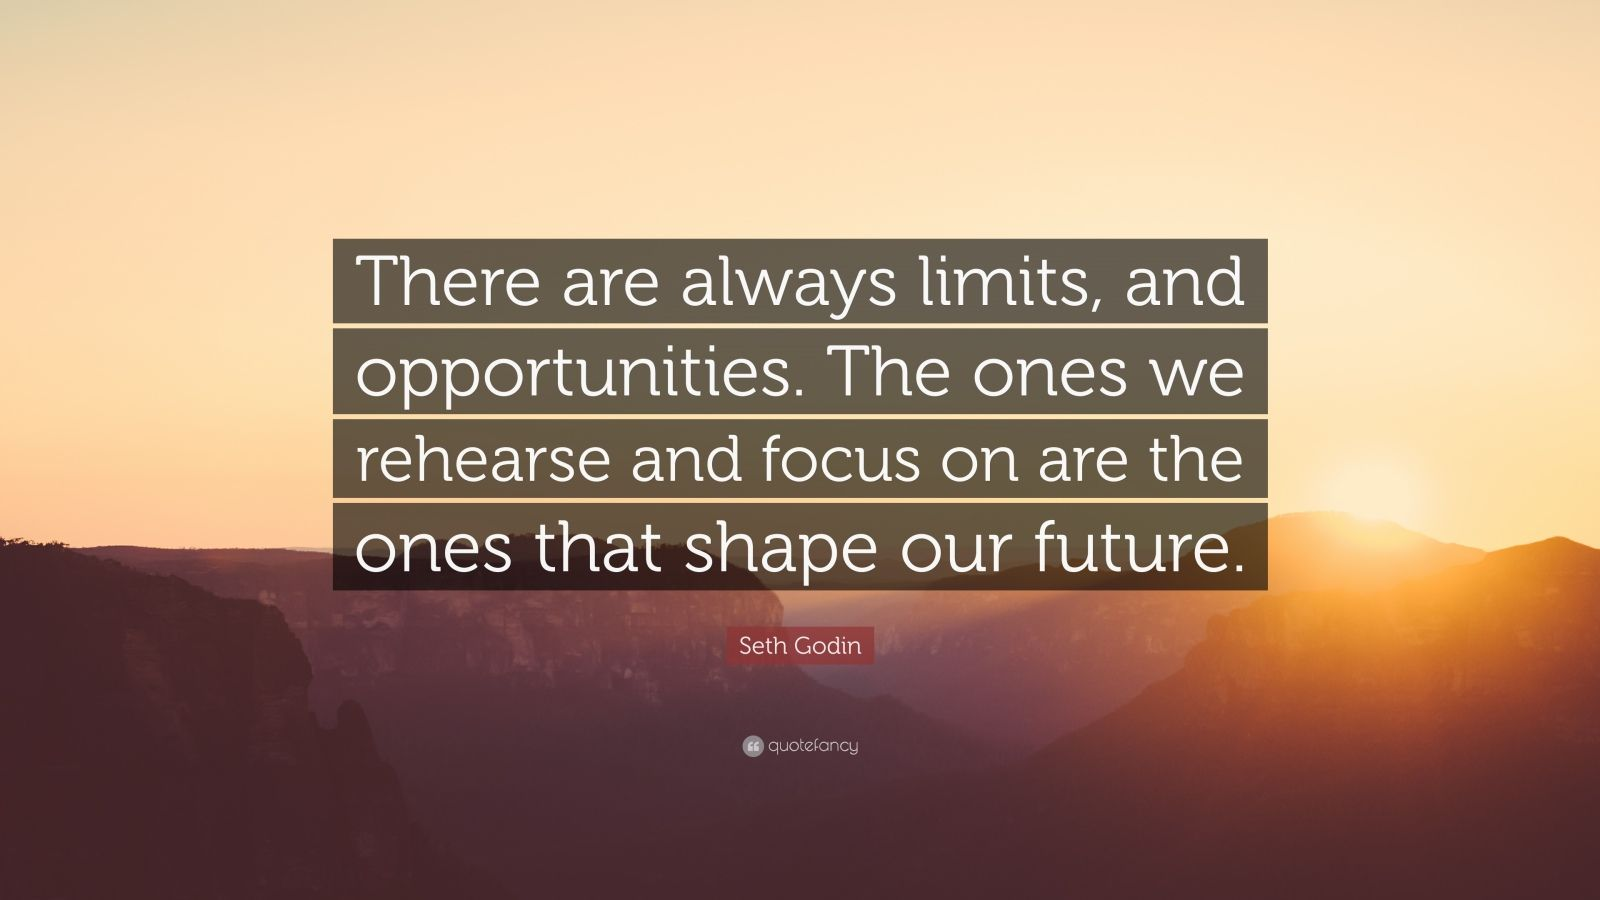 """Seth Godin Quote: """"There are always limits, and opportunities. The ones we rehearse and focus on are the ones that shape our future."""""""